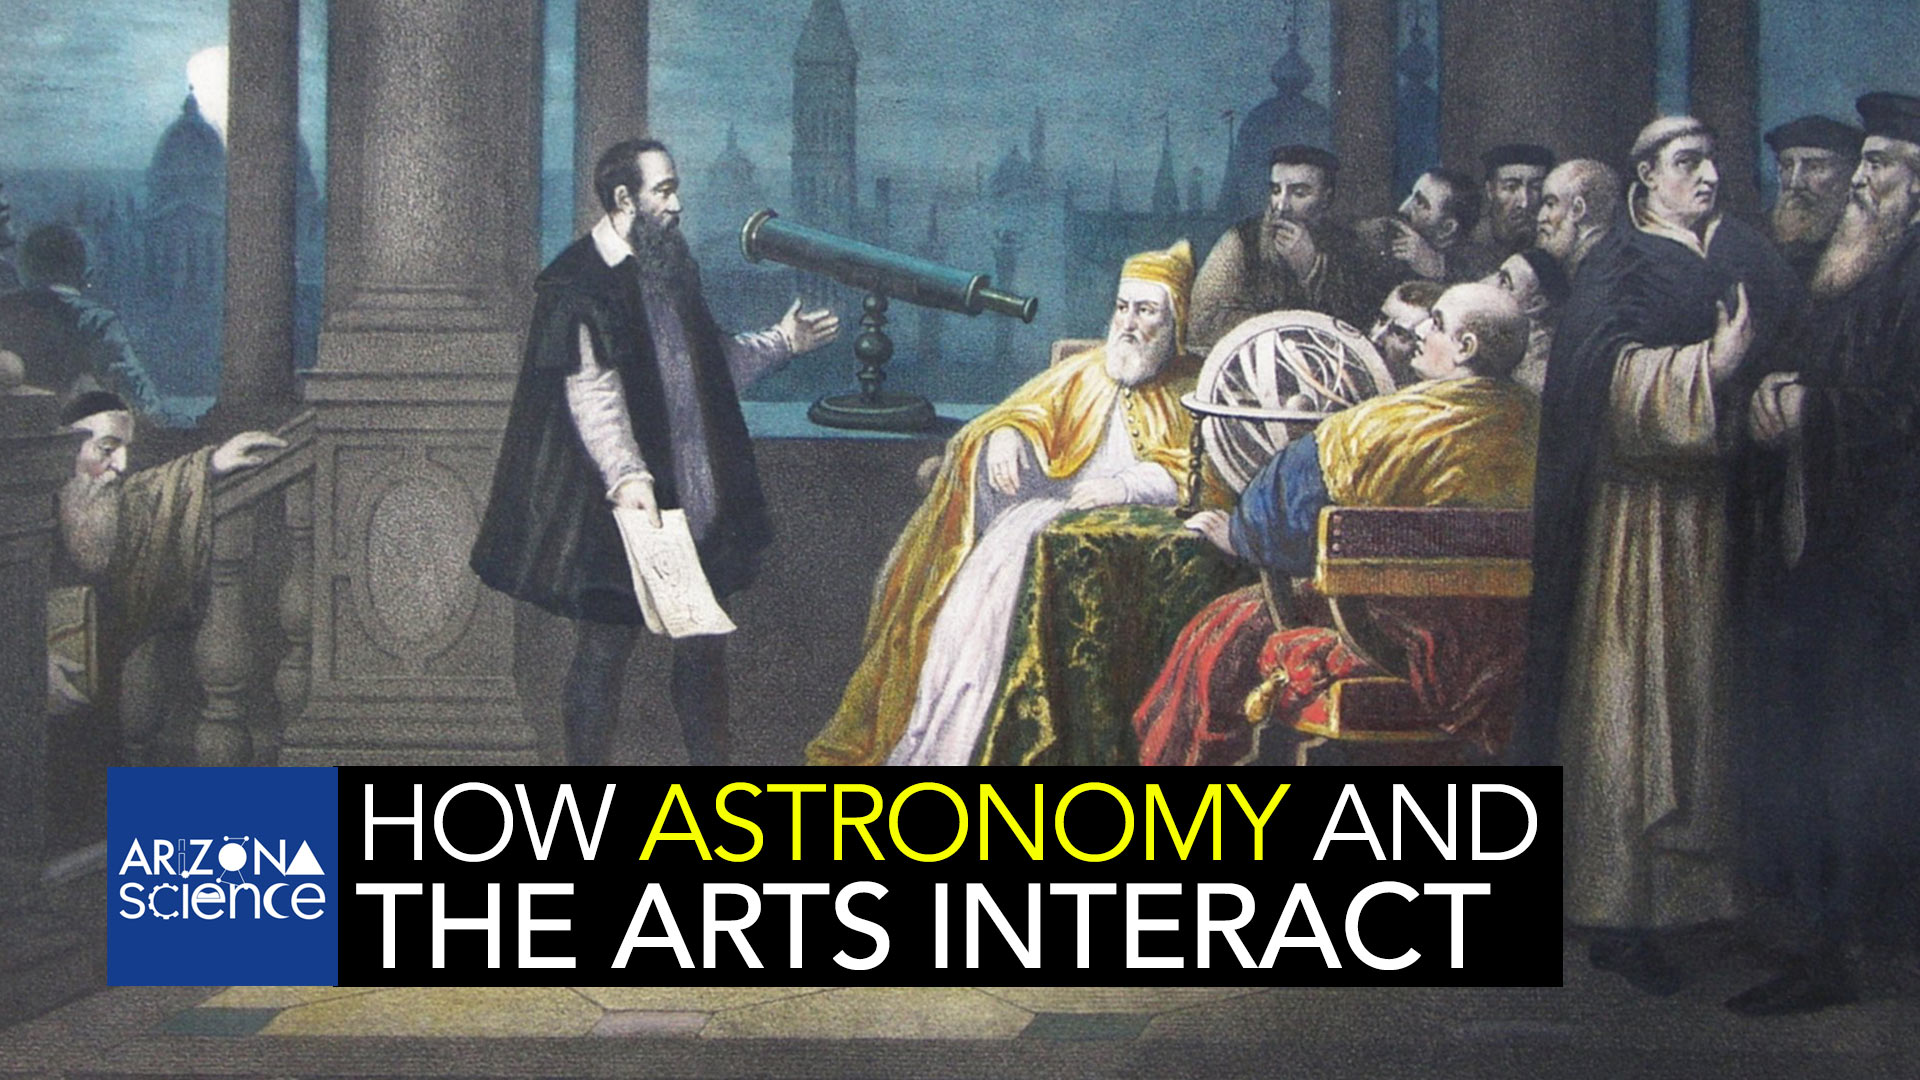 The role of astronomical themes in poetry and art. (Painting by H.J. Detouche)